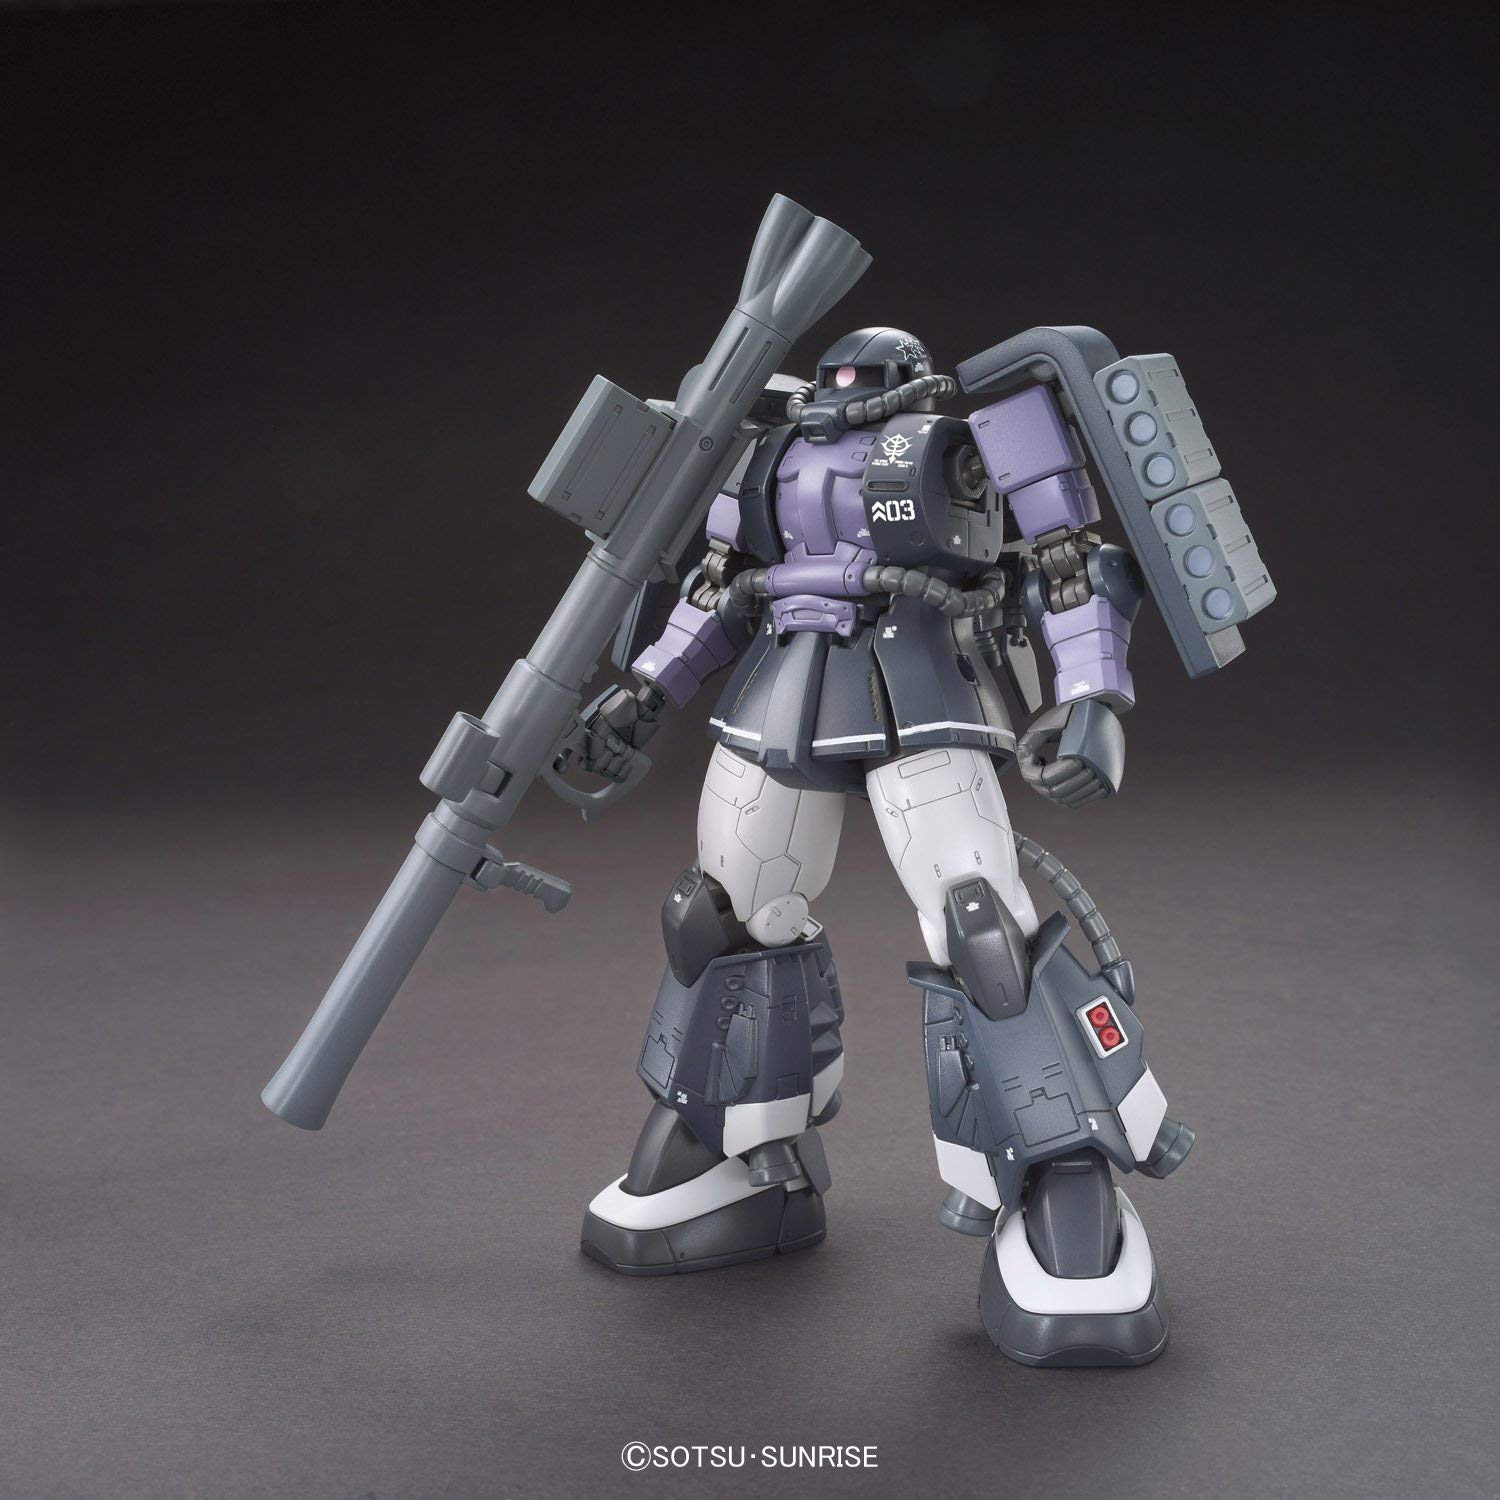 4771HG 1/144 MS-06R-1A 高機動型ザクII(ガイア/マッシュ専用機) [Zaku II High Mobility Type (Gaia/Mash Custom)]